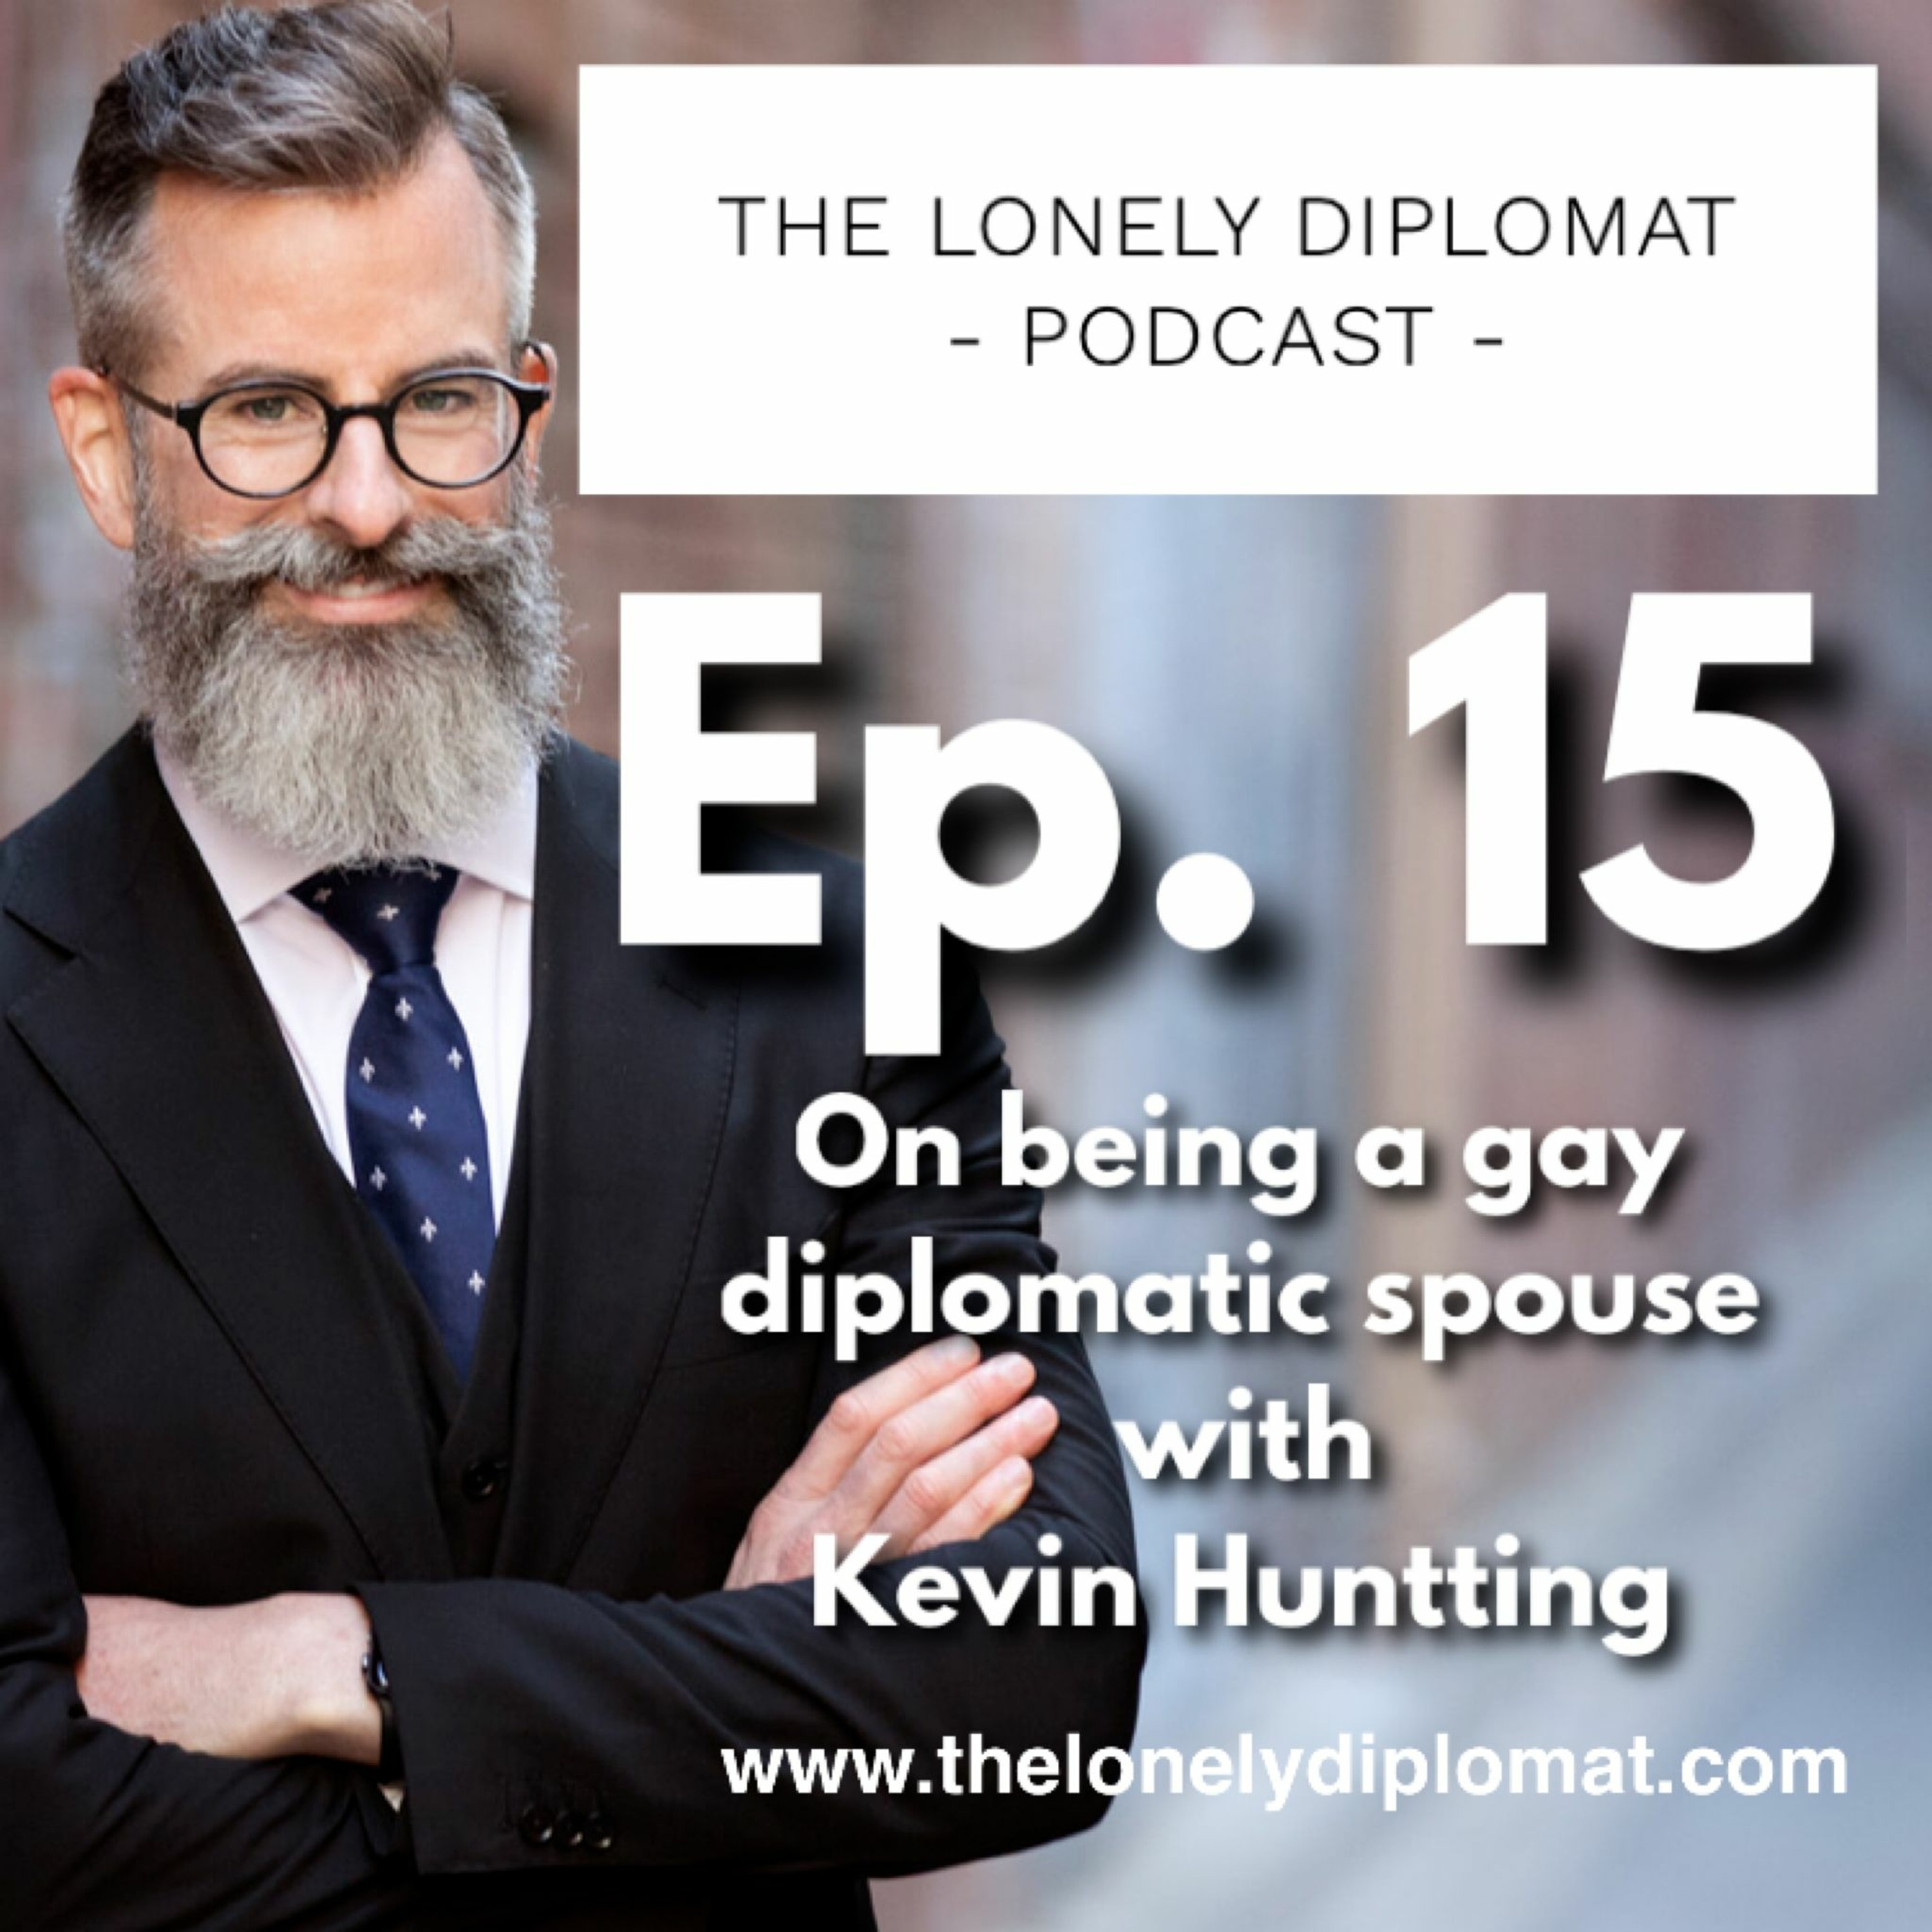 Ep. 15 - On being a gay diplomatic spouse with Kevin Huntting